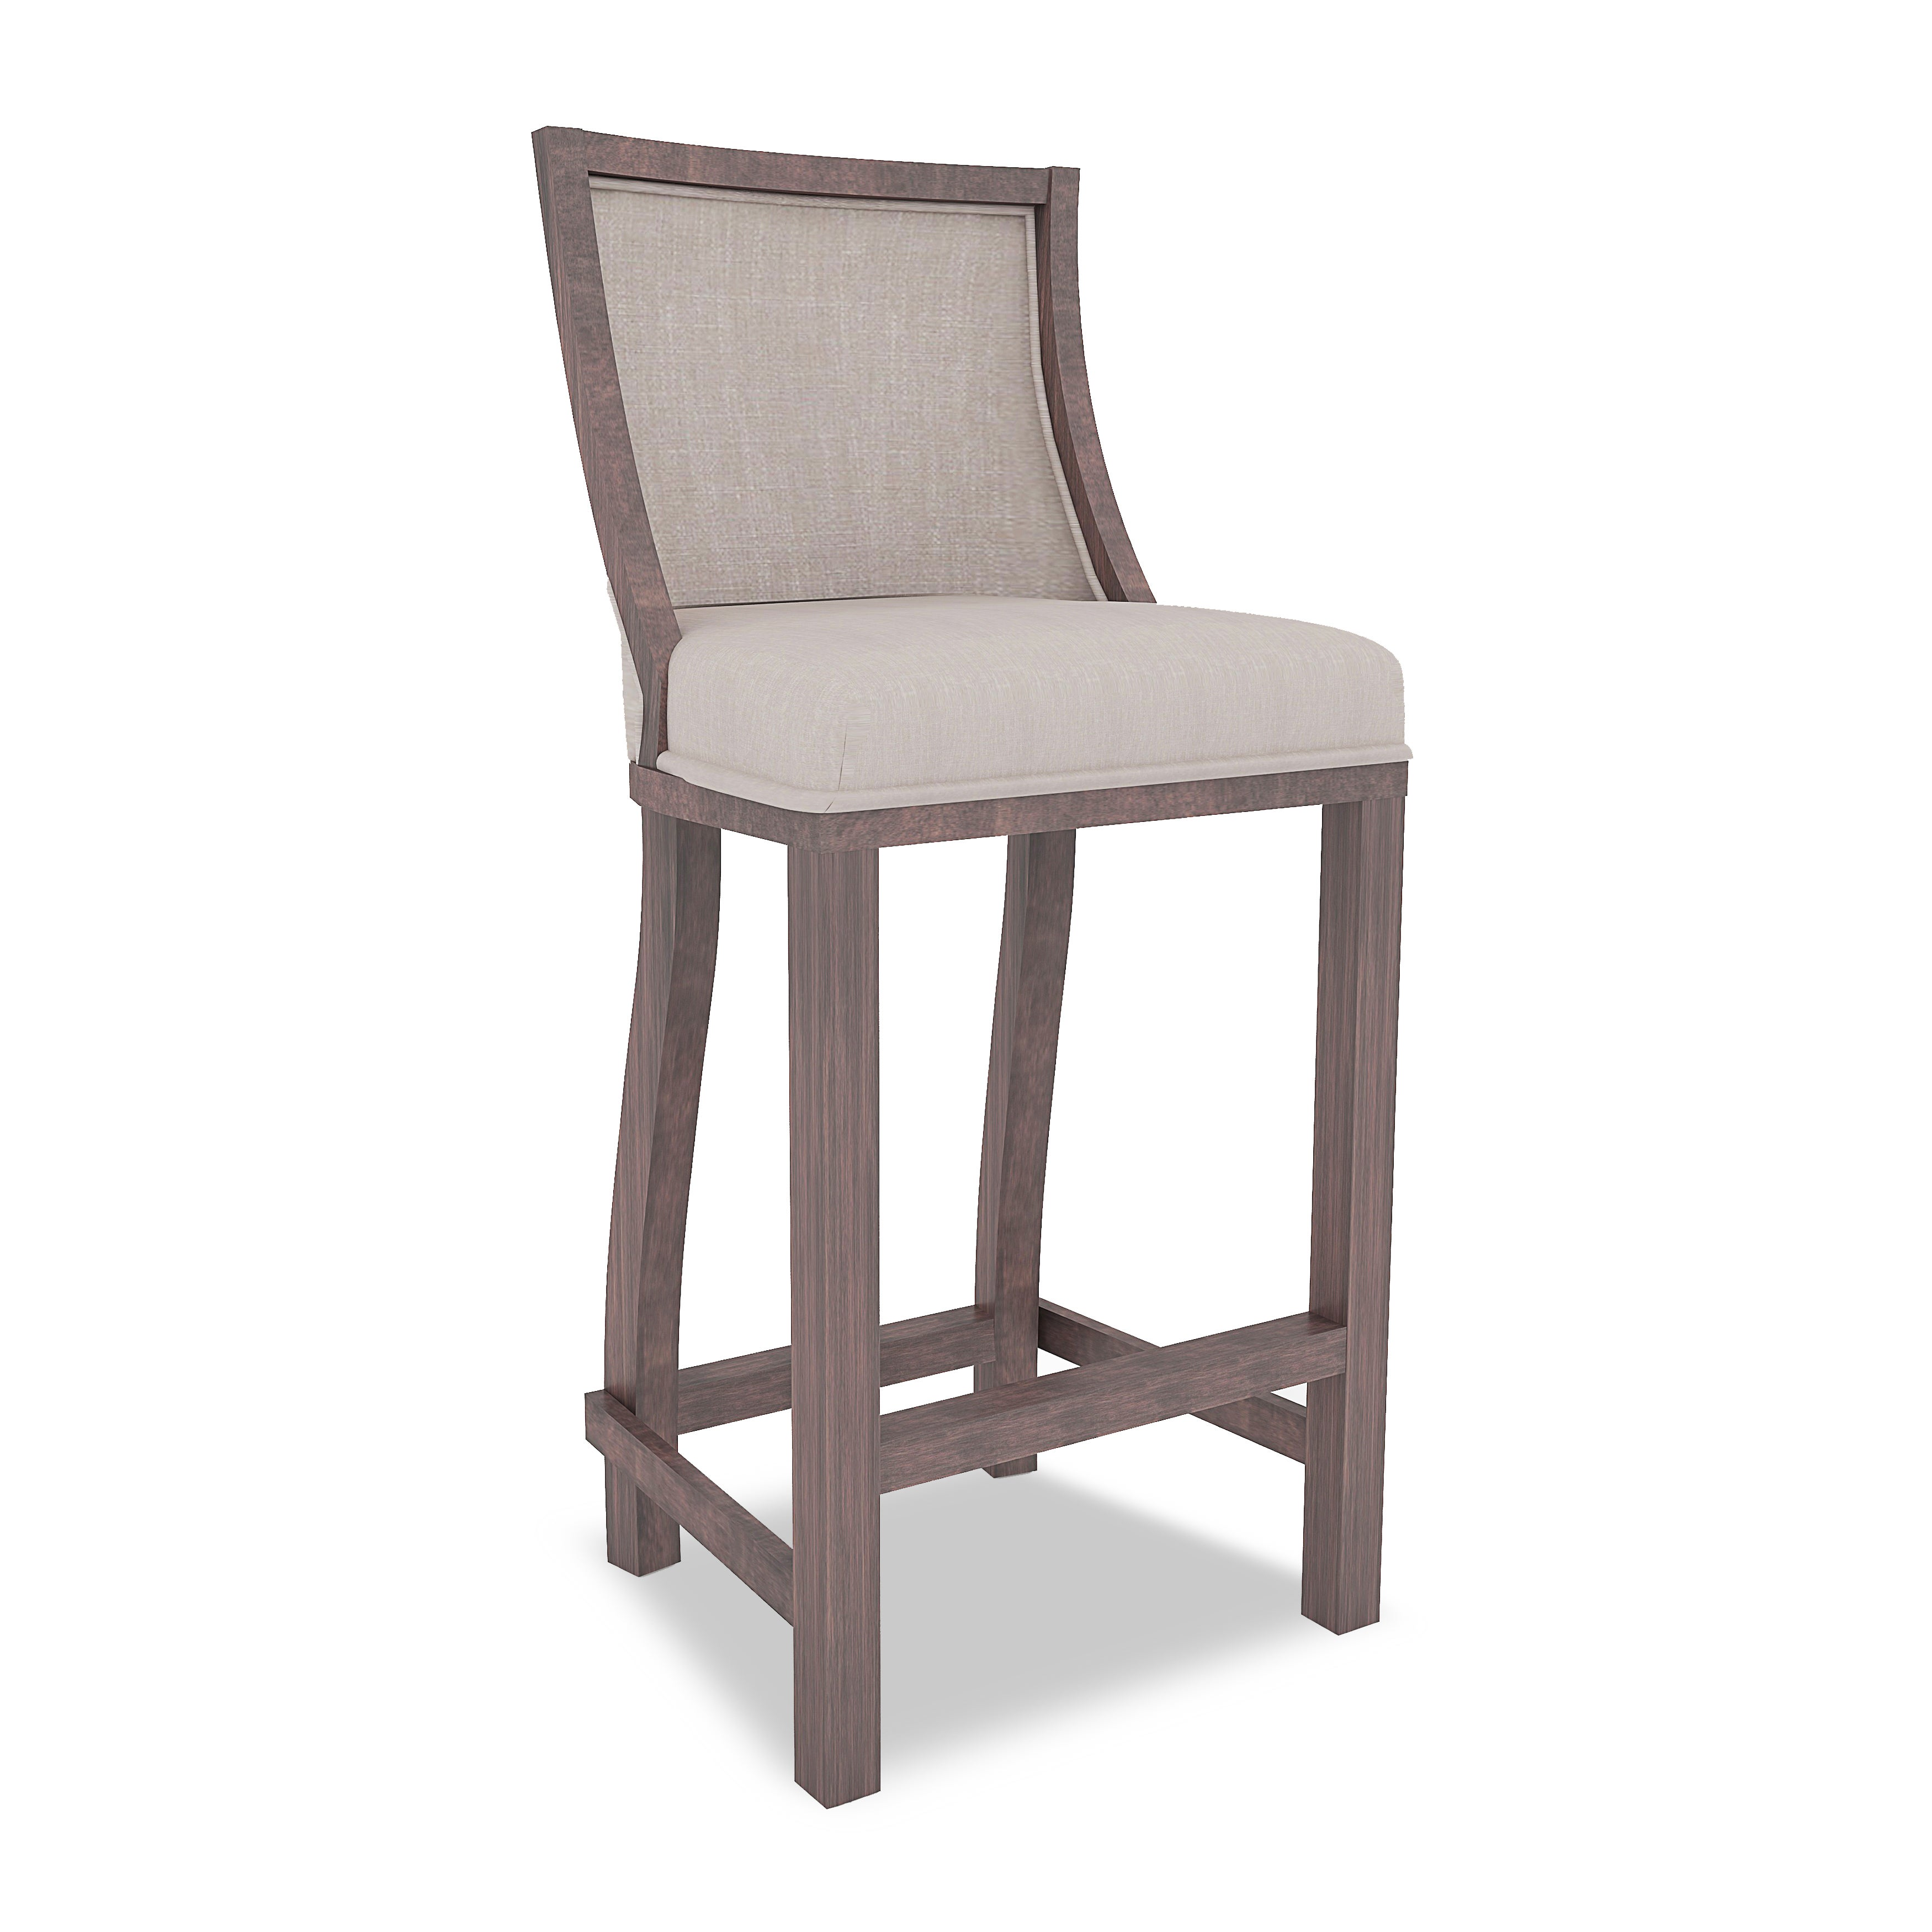 Astonishing The Gray Barn Park Avenue Beige Linen Counter Stool Unemploymentrelief Wooden Chair Designs For Living Room Unemploymentrelieforg